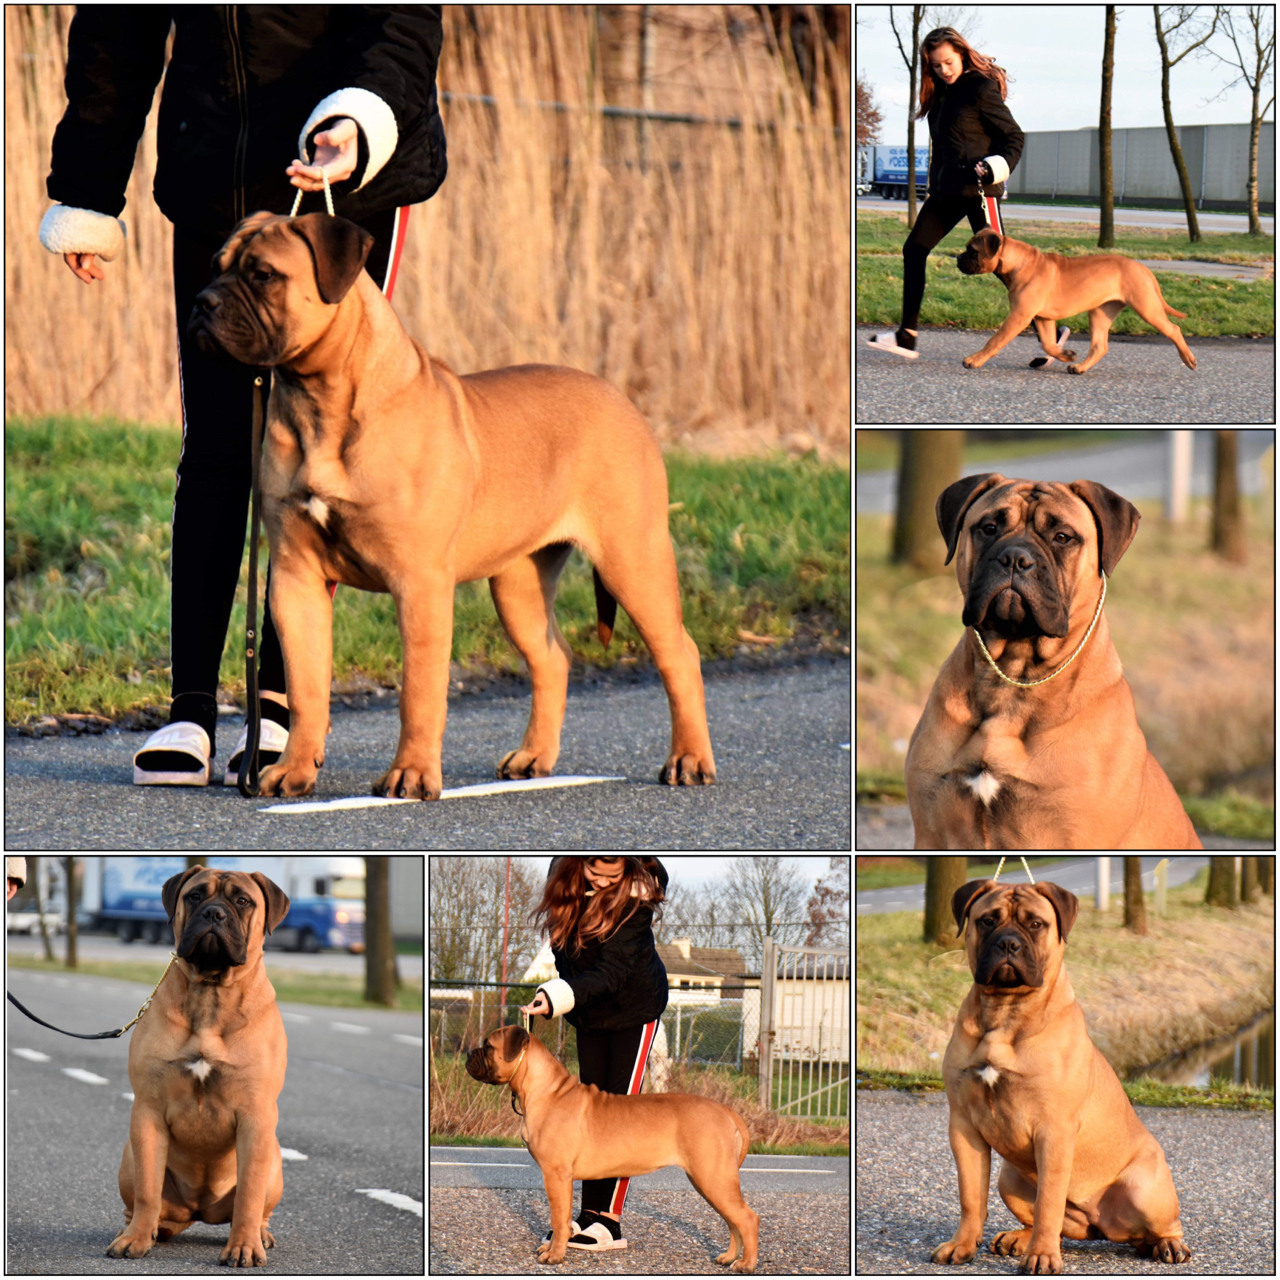 Valcobulls reasonable doubt best puppy in breed